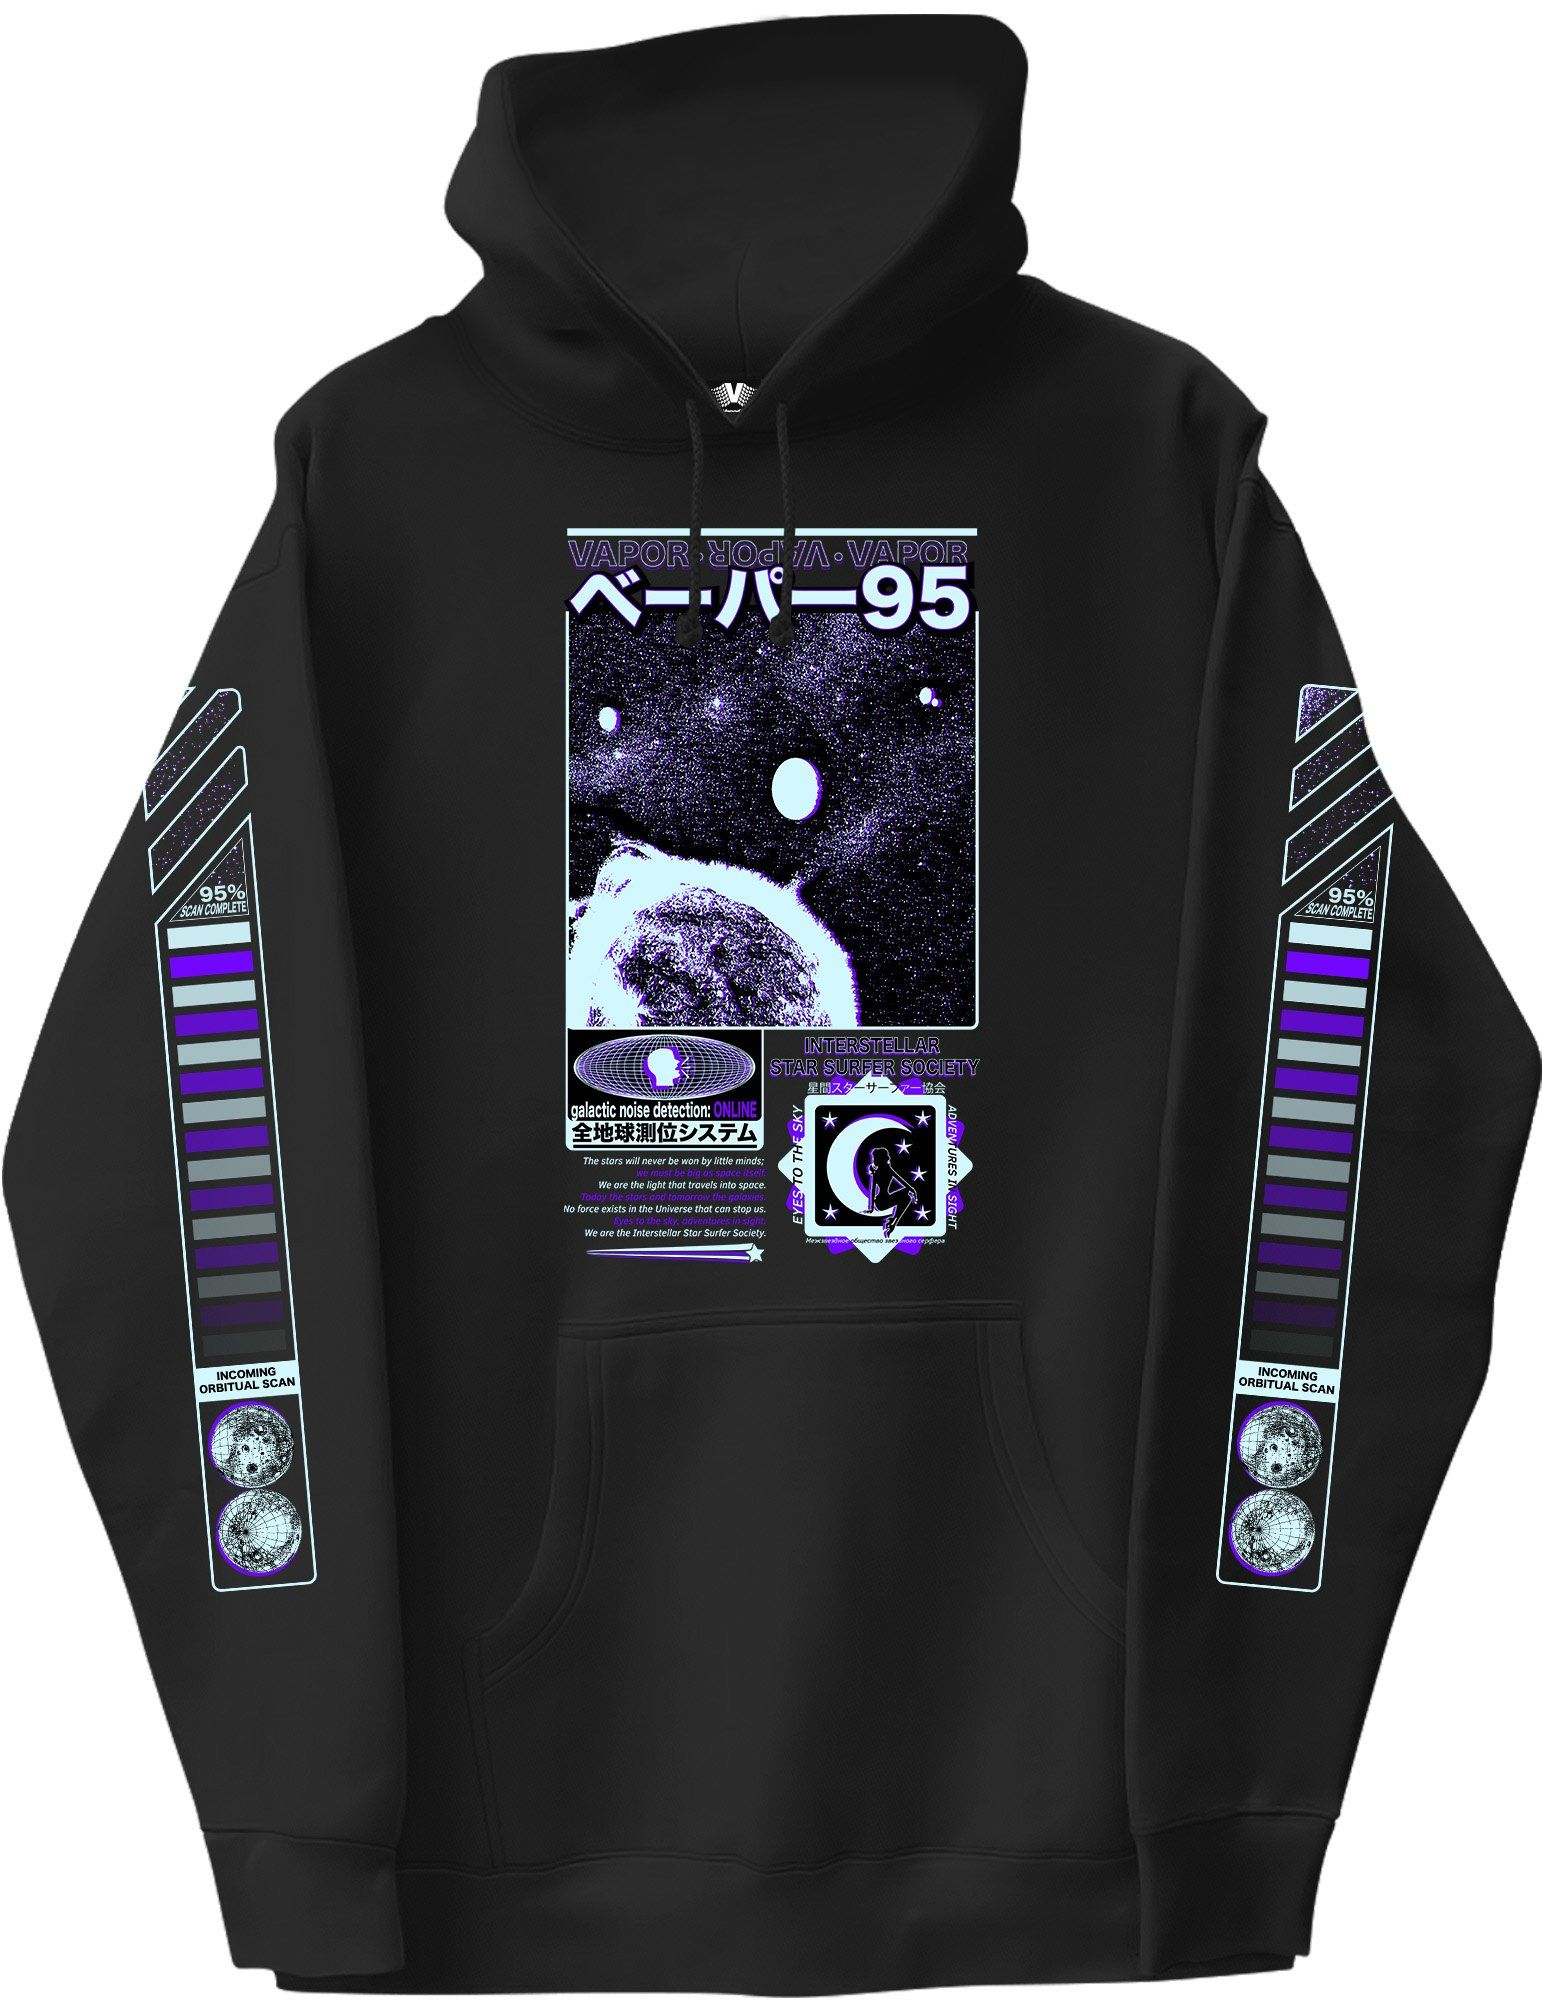 The Future is Accessible Mens Hooded Sweatshirt Theme Printed Fashion Hoodie